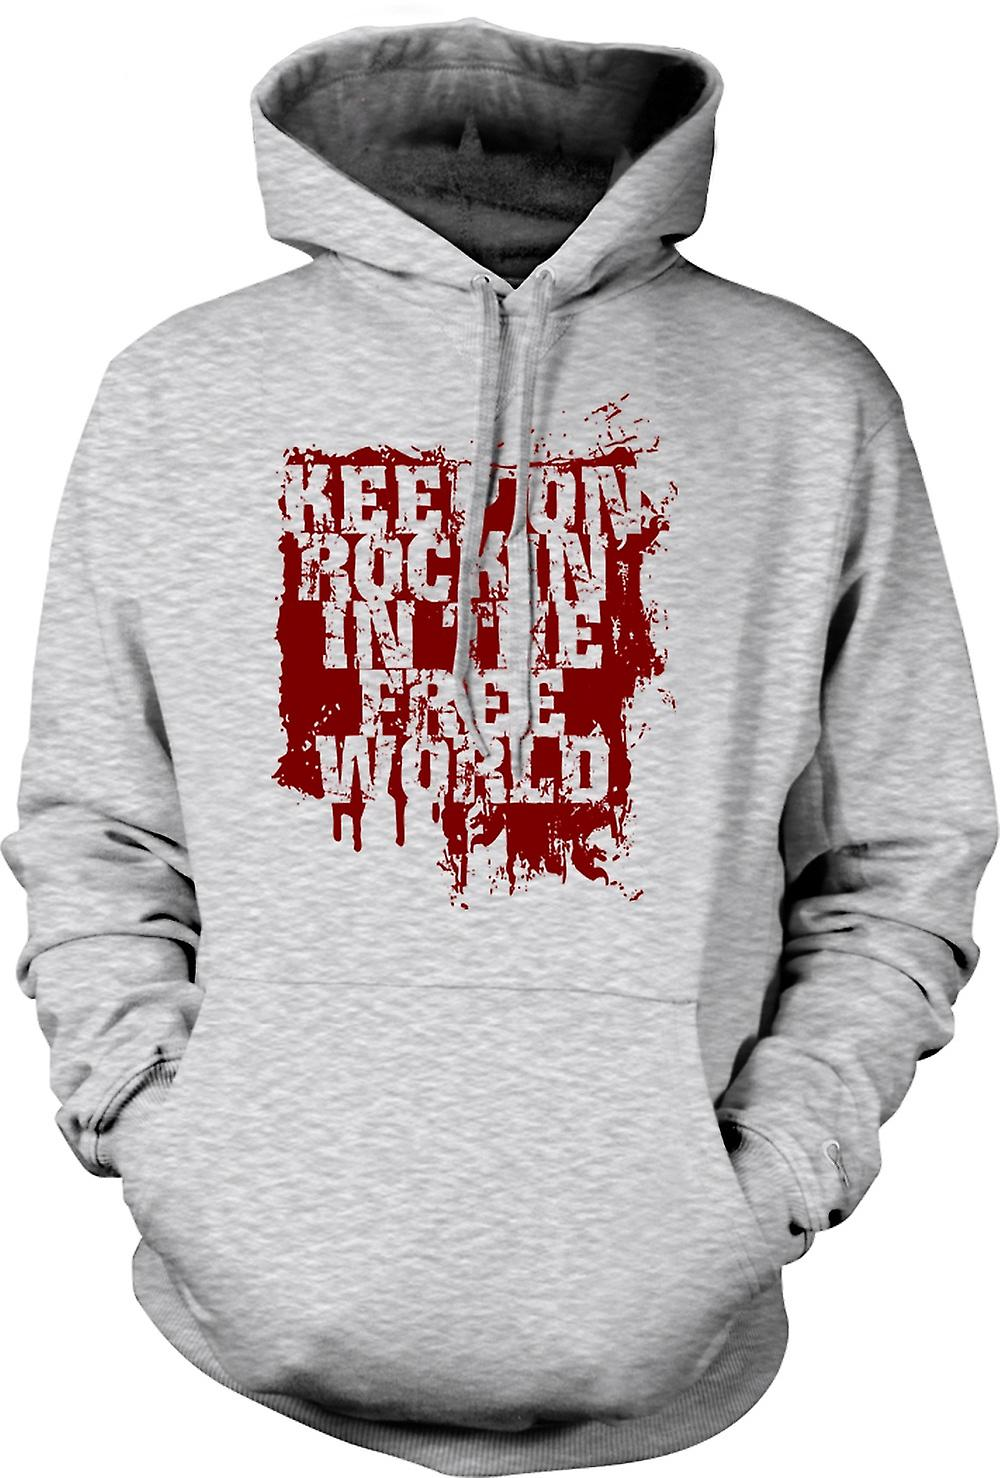 Mens Hoodie - Keep On Rockin In The Free World